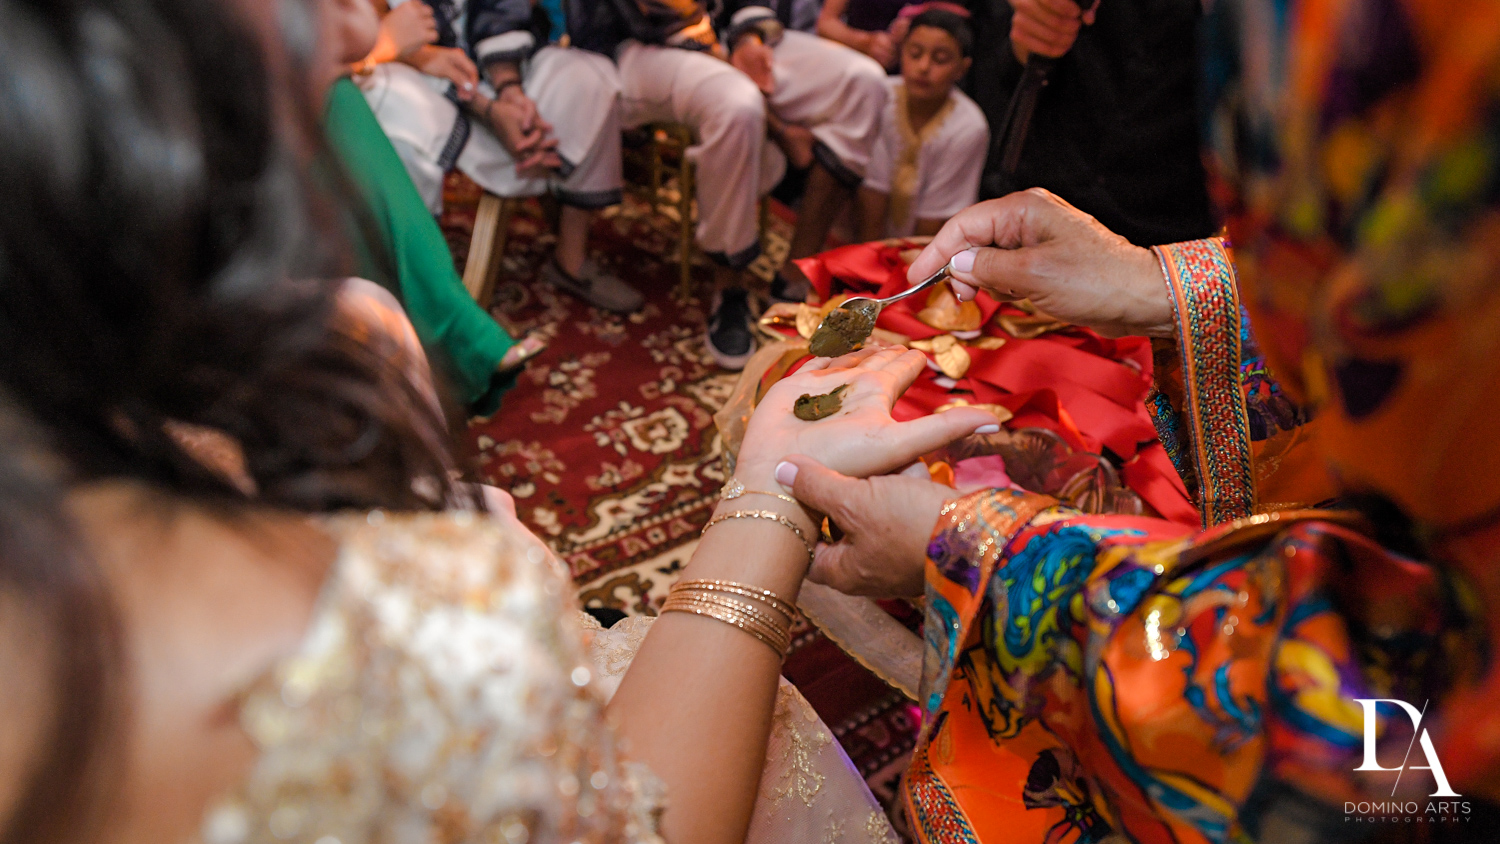 henna tradition at Authentic Morrocan Jewish Henna Party by Domino Arts Photography